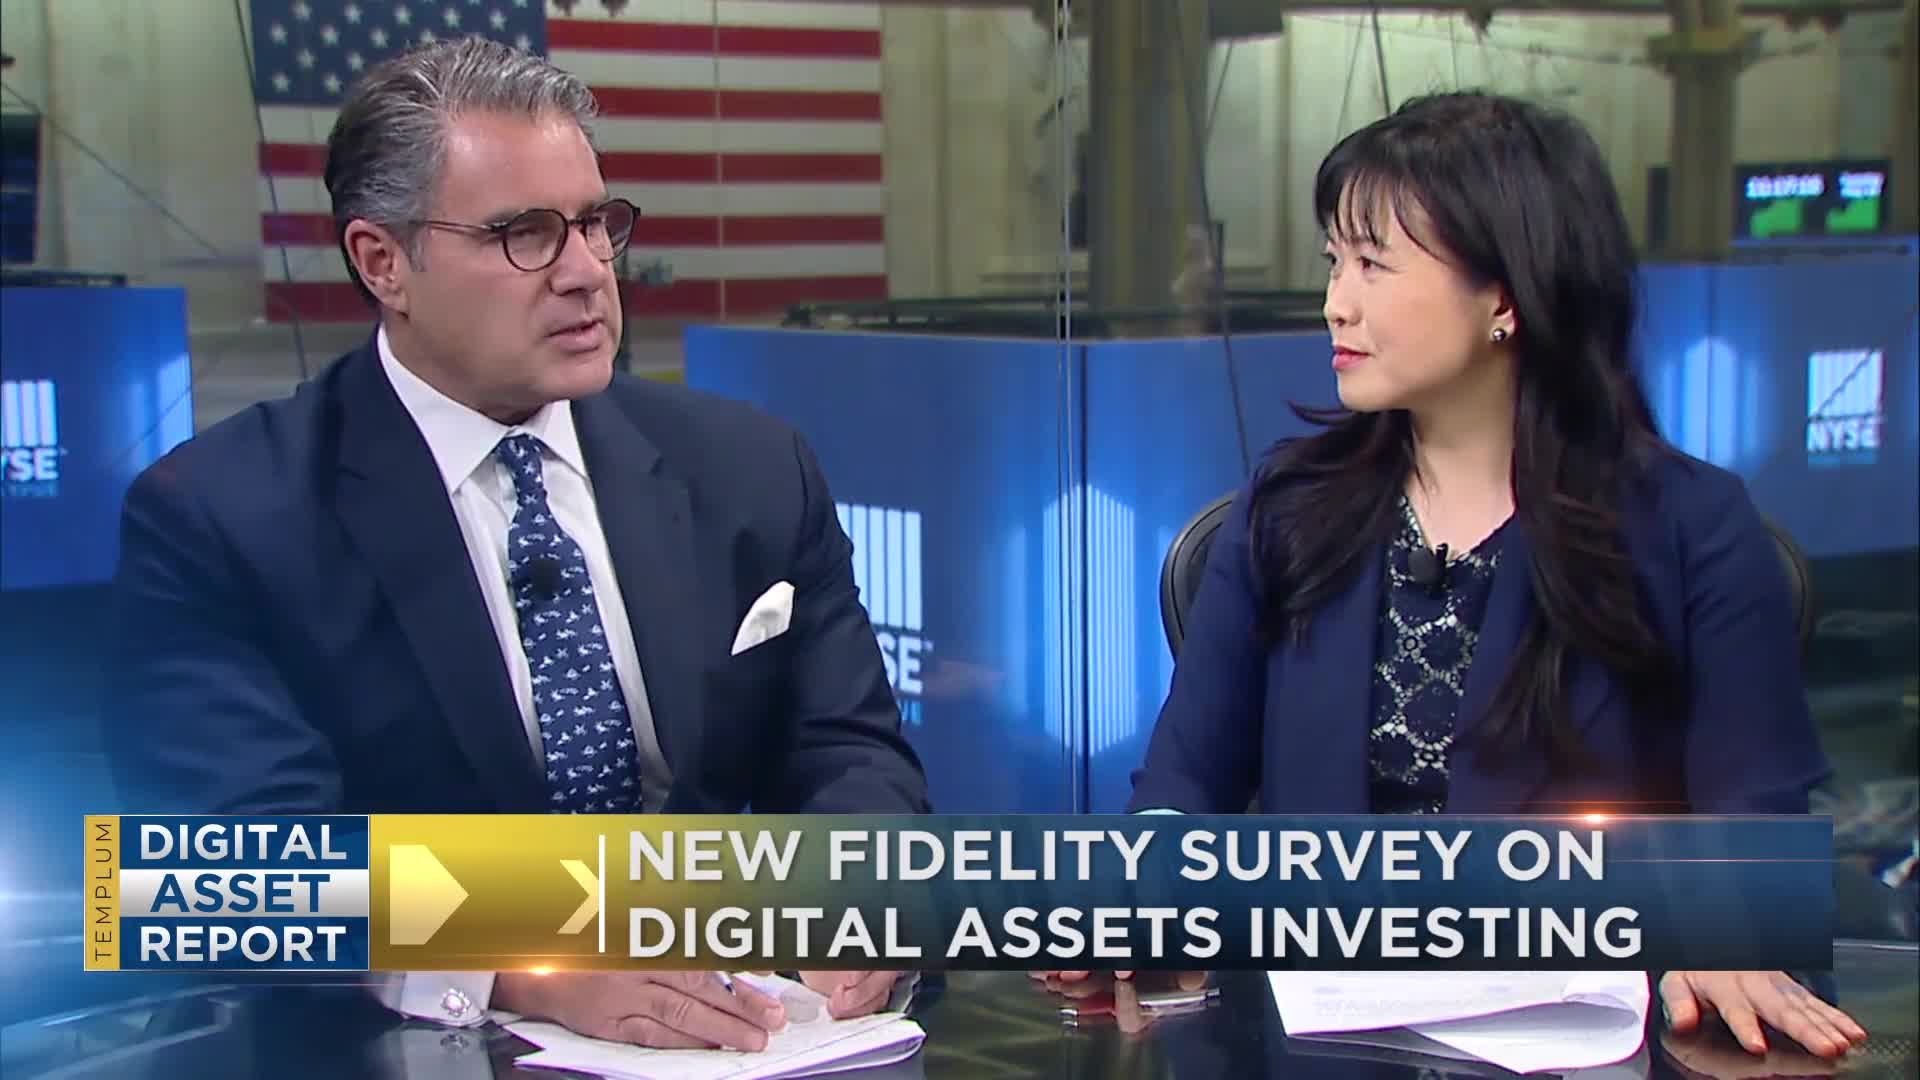 DATA_DOWNLOAD_New_Survey_from_Fidelity_on_Digital_AssetsCrypto_Investments.mp4